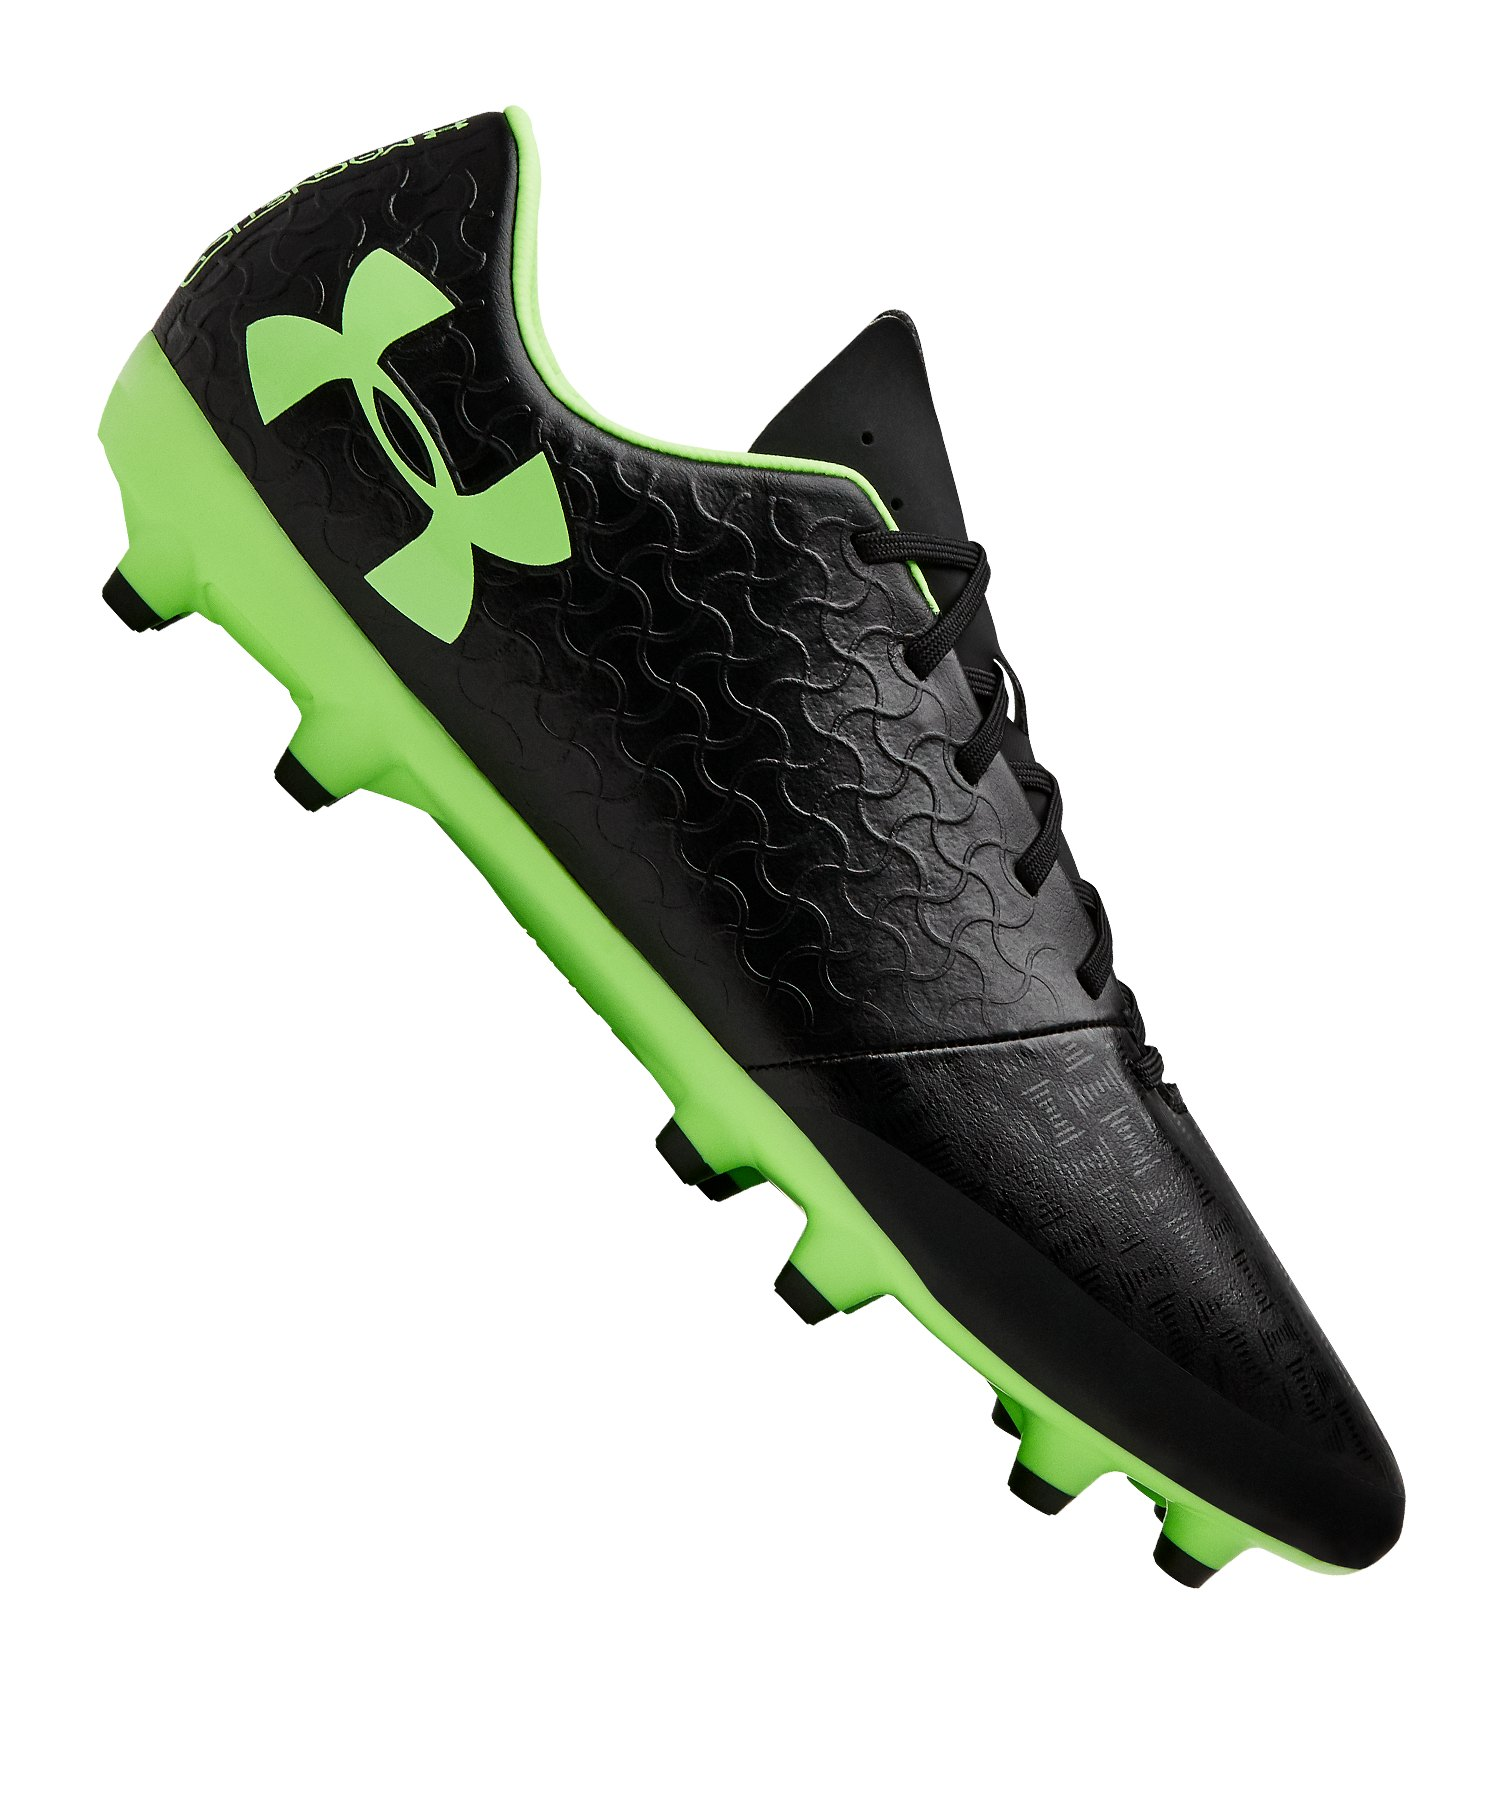 Under Armour Magnetico Select FG Schwarz F002 - Schwarz